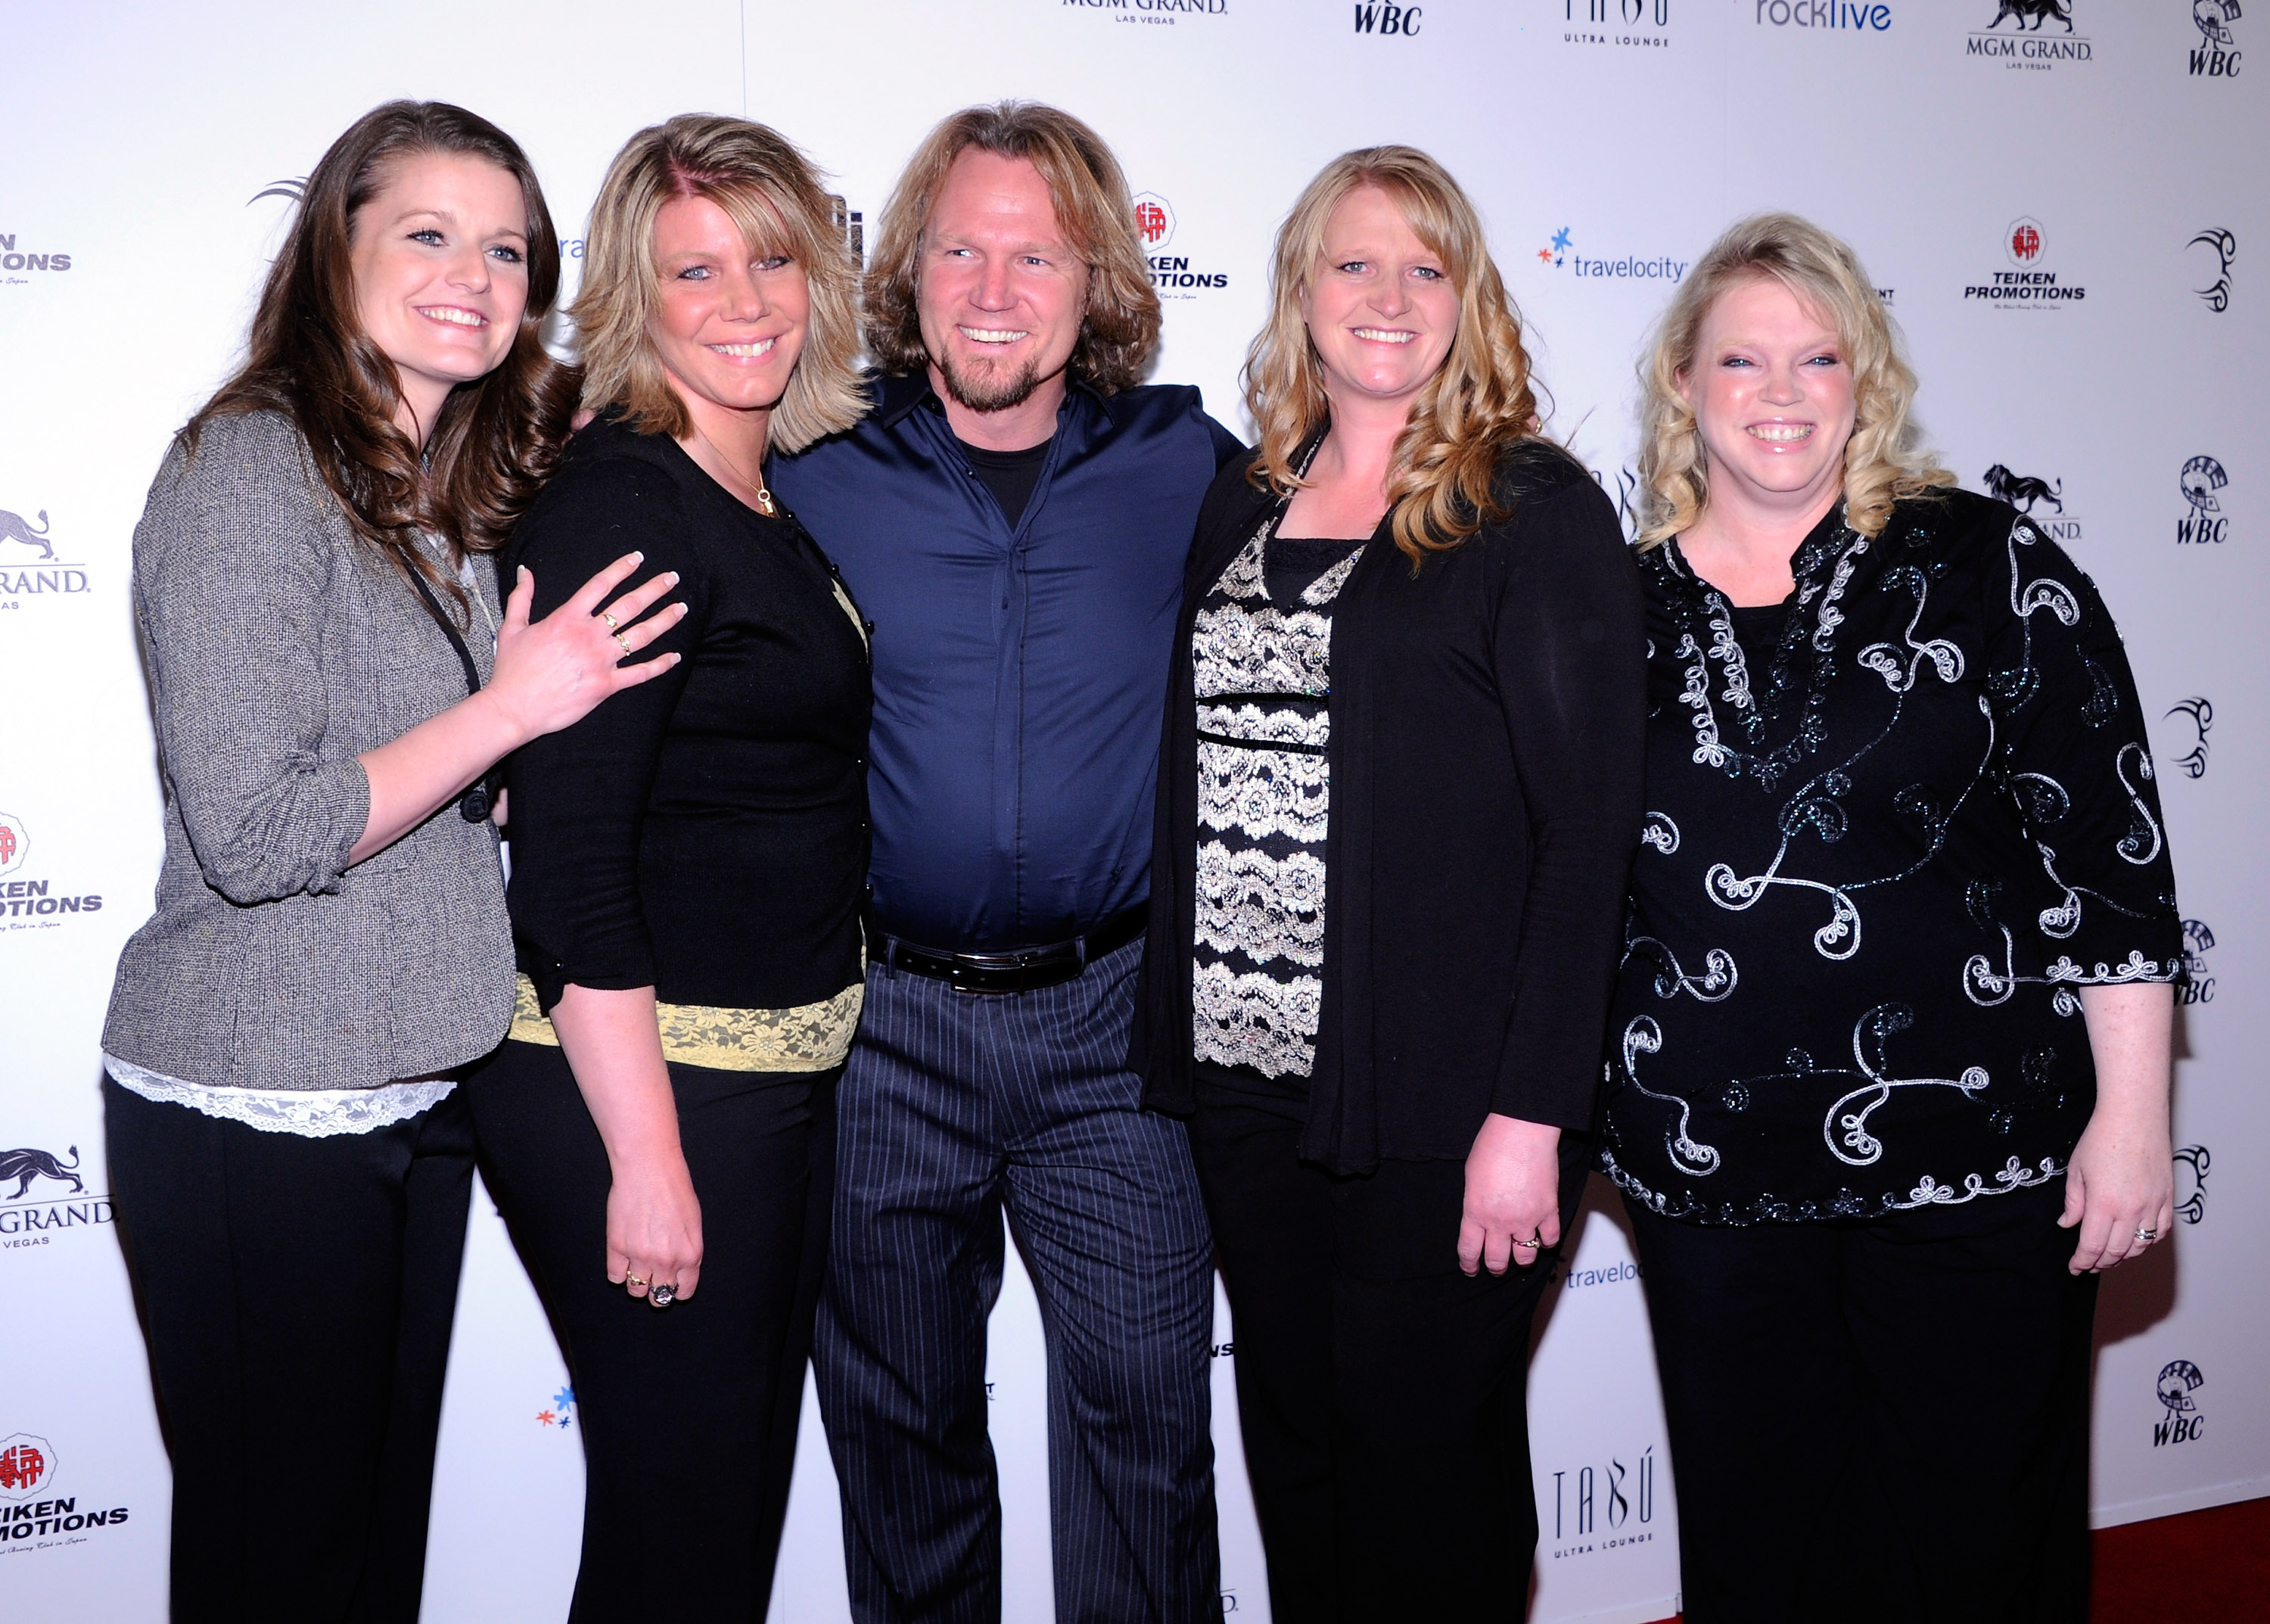 sister wives kody brown christine brown meri brown janelle brown robyn brown